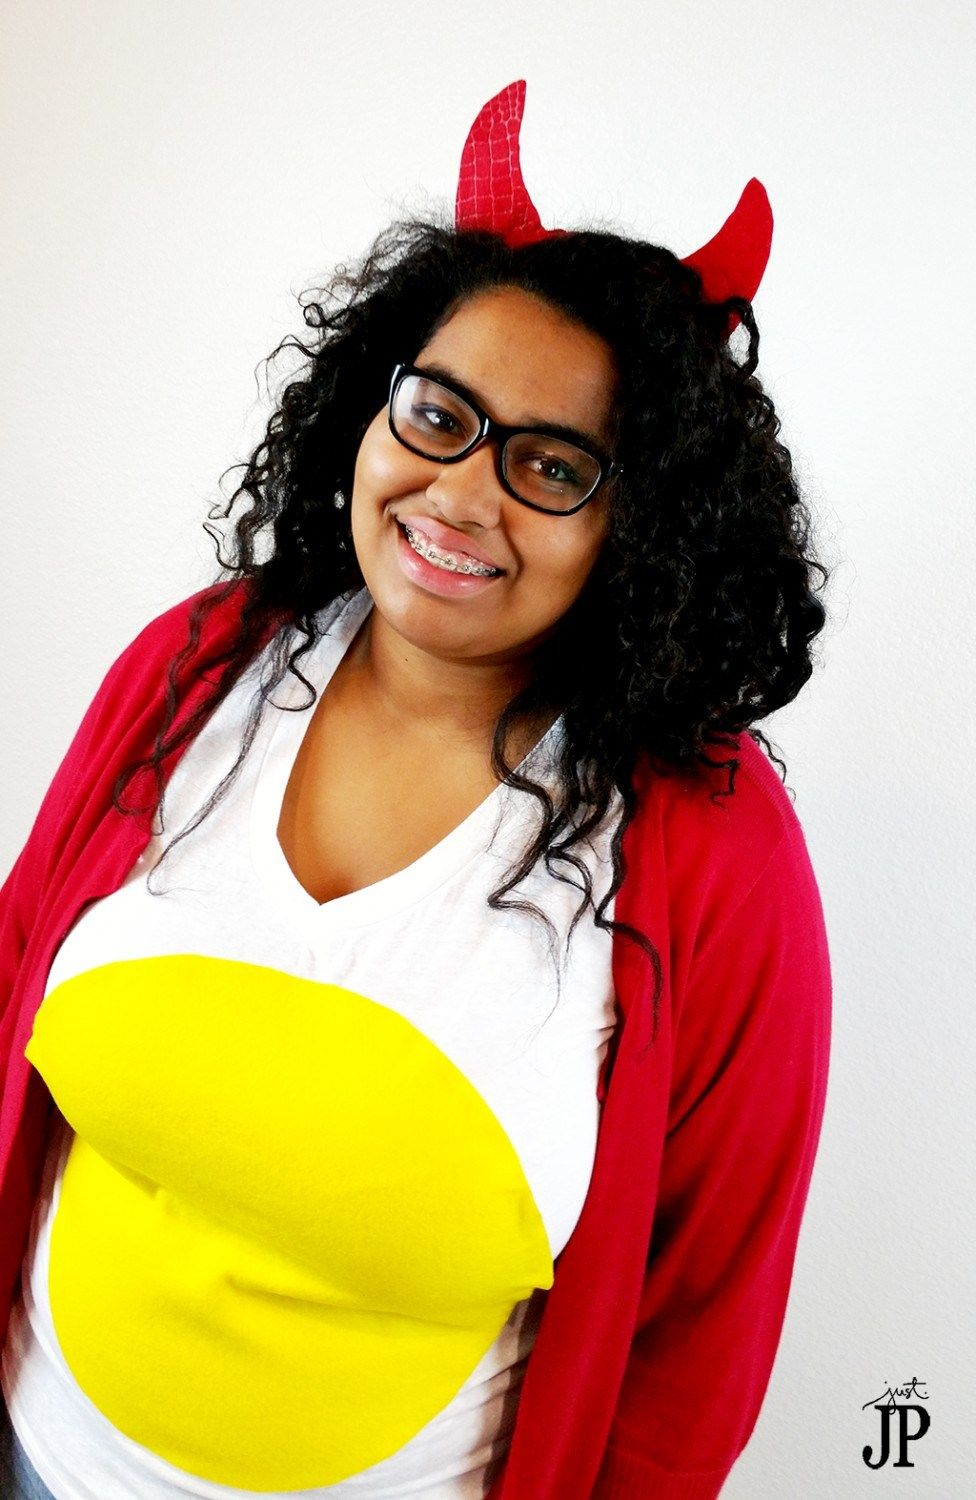 Last Minute Costume Idea - DIY Deviled Egg Costume #JPHalloween ...